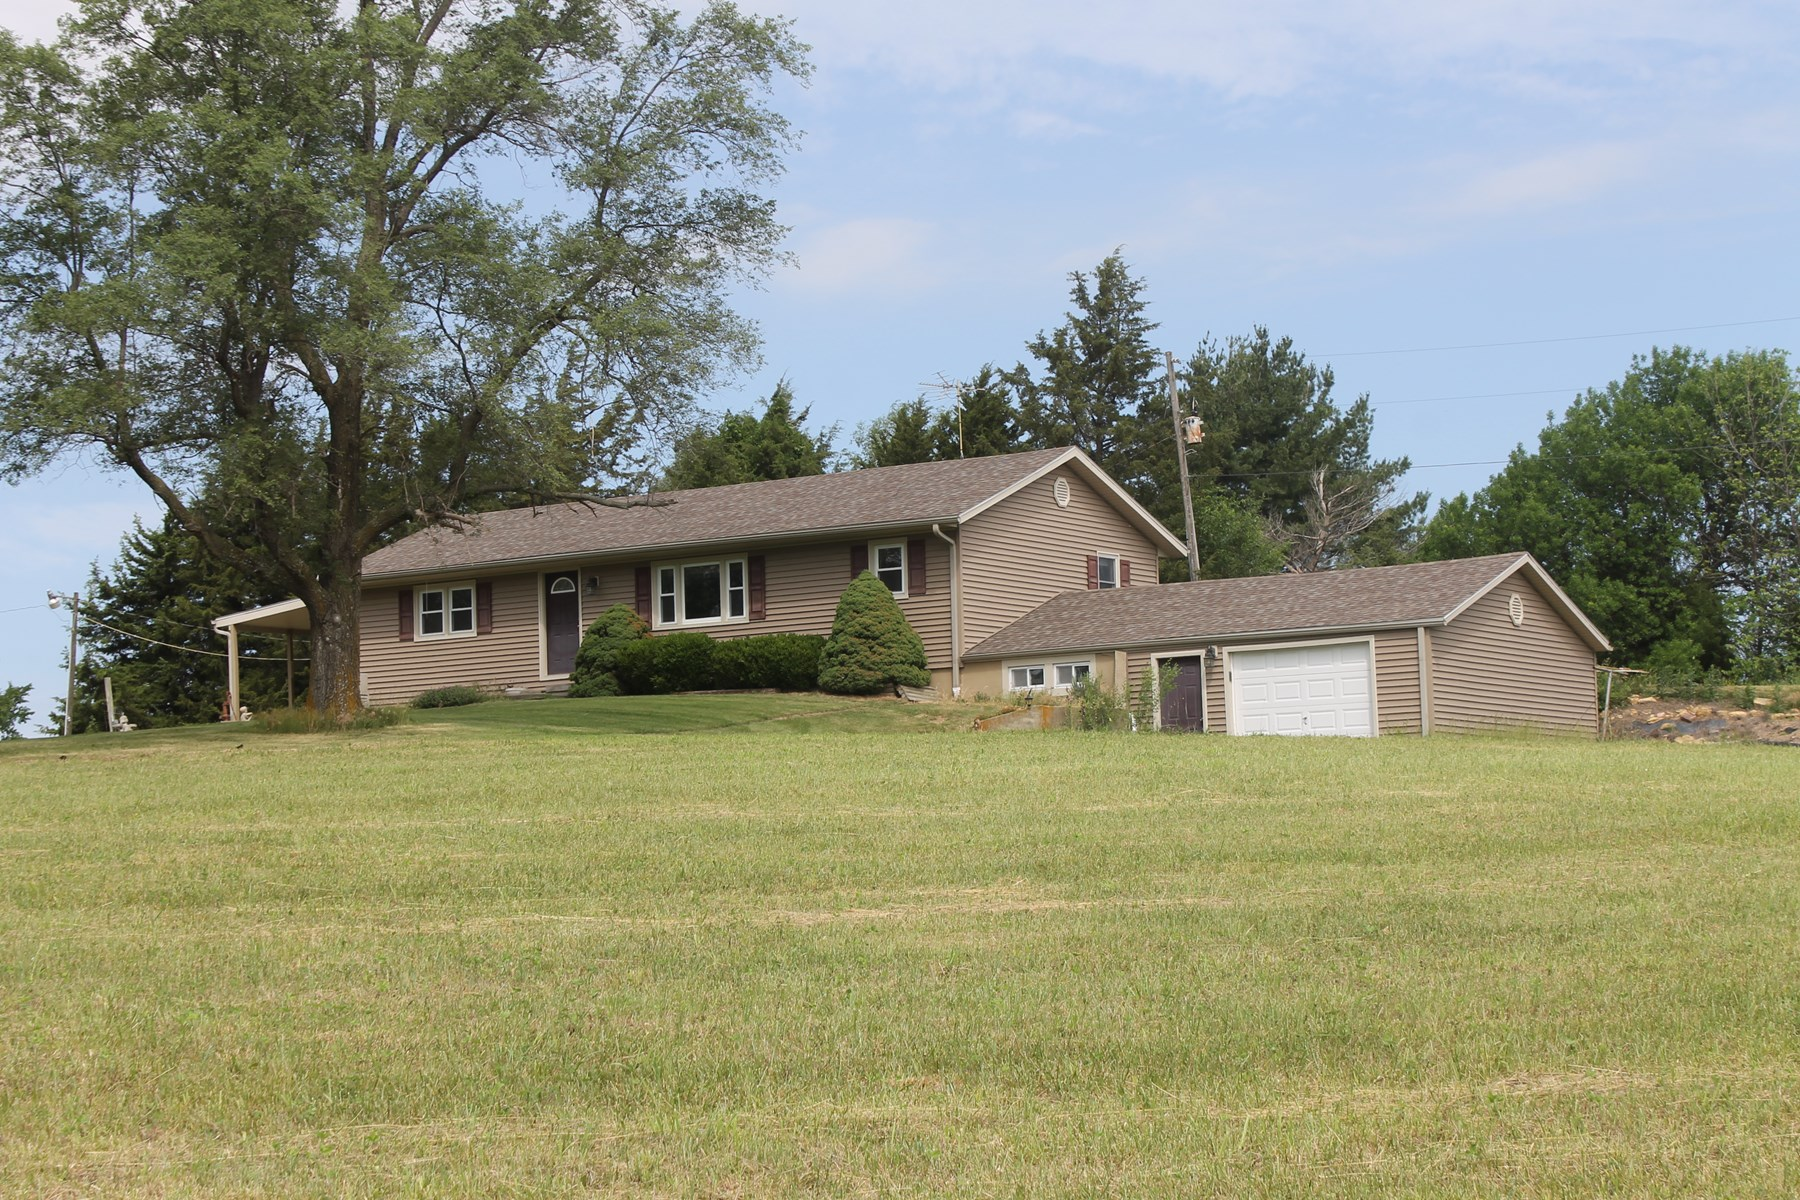 MAYSVILLE MO HOME & ACREAGE FOR SALE - PRICE REDUCTION!